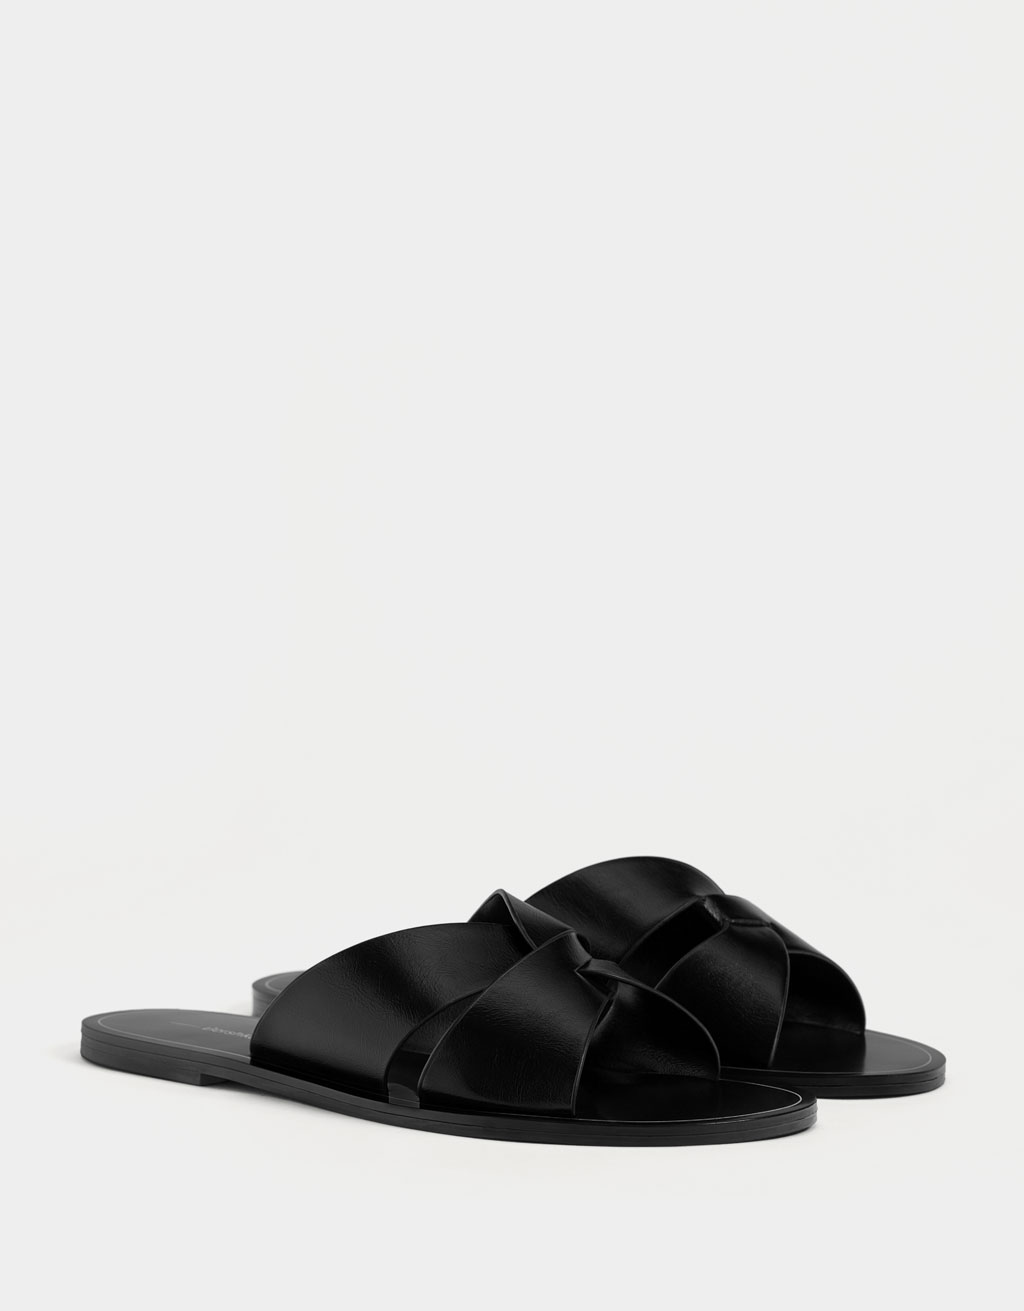 Criss-cross strap slides